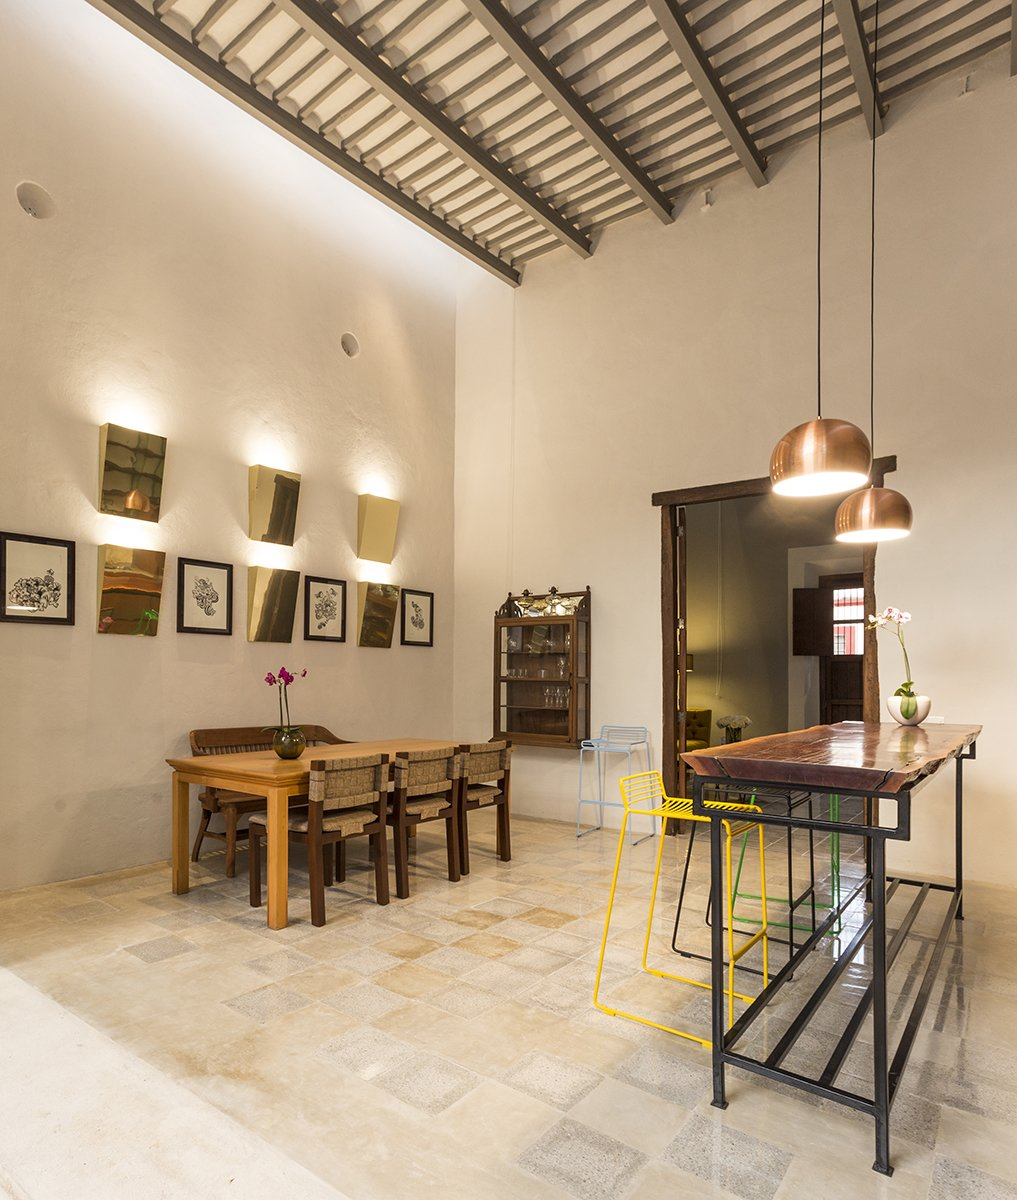 The old ceilings and walls of the existing structure  were preserved to keep the spirit of the old house Tagged: Dining Room, Wall Lighting, Pendant Lighting, Chair, Table, Shelves, and Cement Tile Floor. Lemon Tree House by Taller Estilo Arquitectura S de R.L de C.V